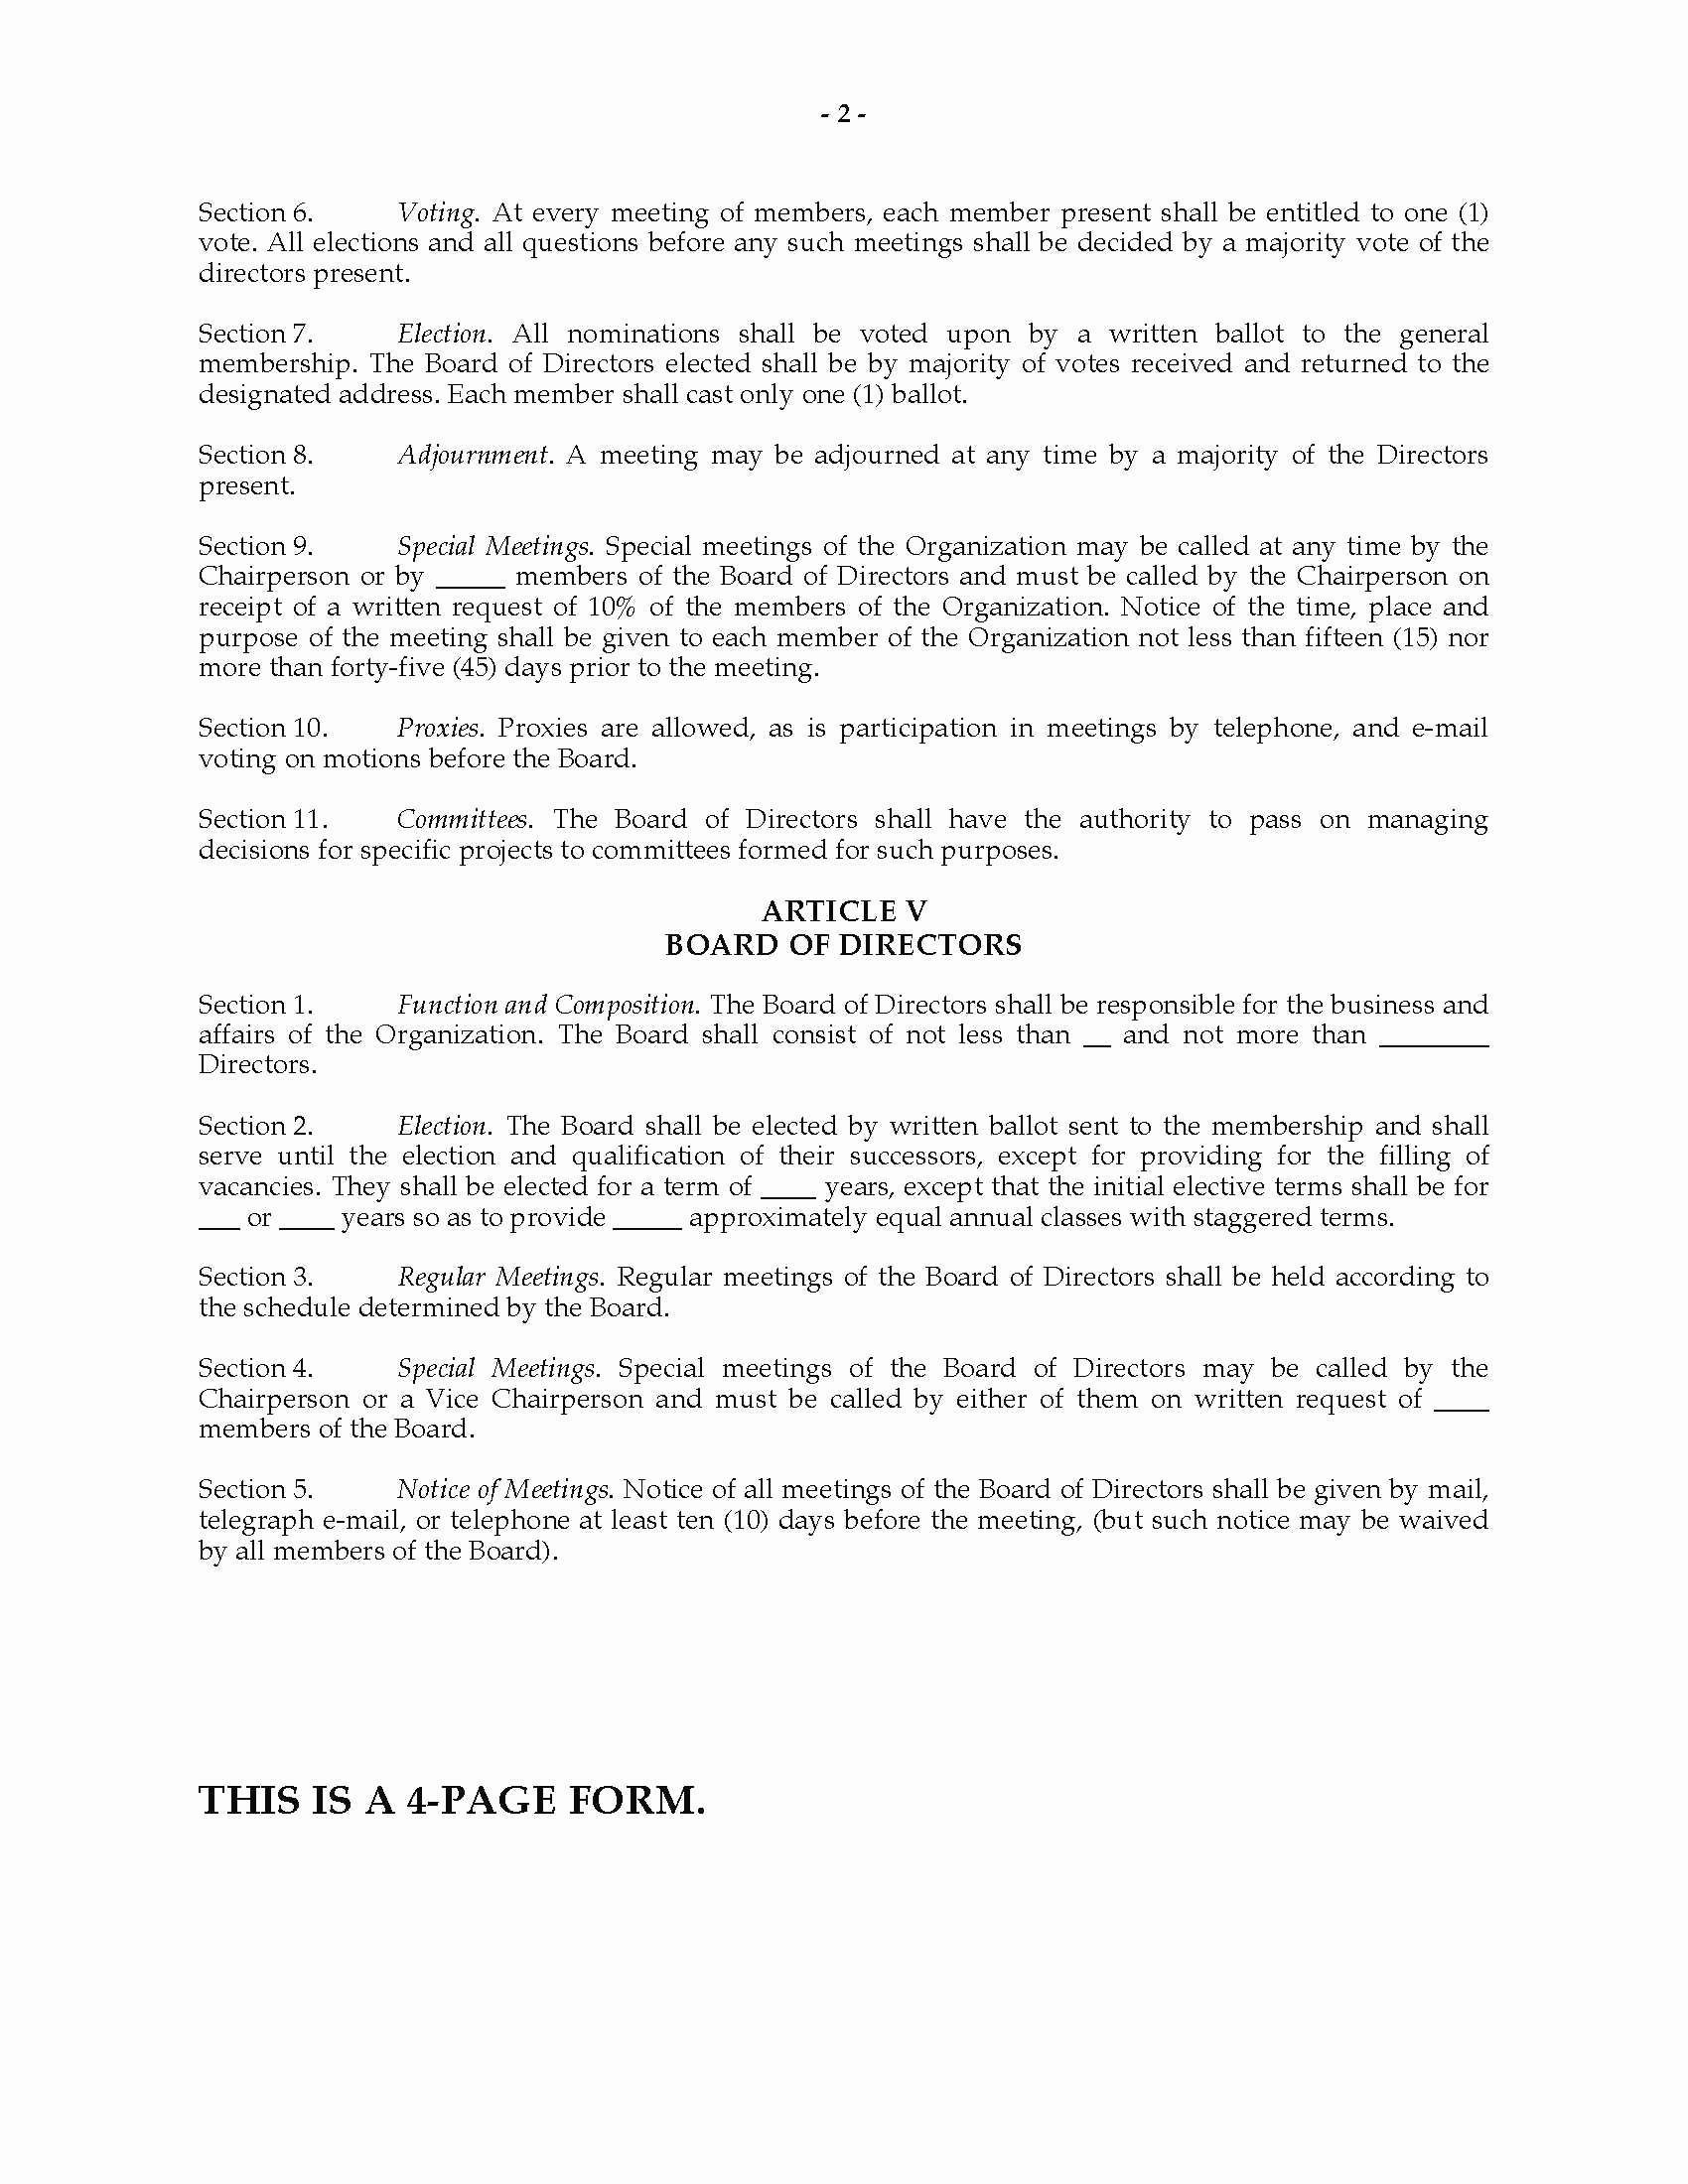 Corporate bylaws Template Pdf Luxury Inspirational Corporate bylaws Sample Pdf